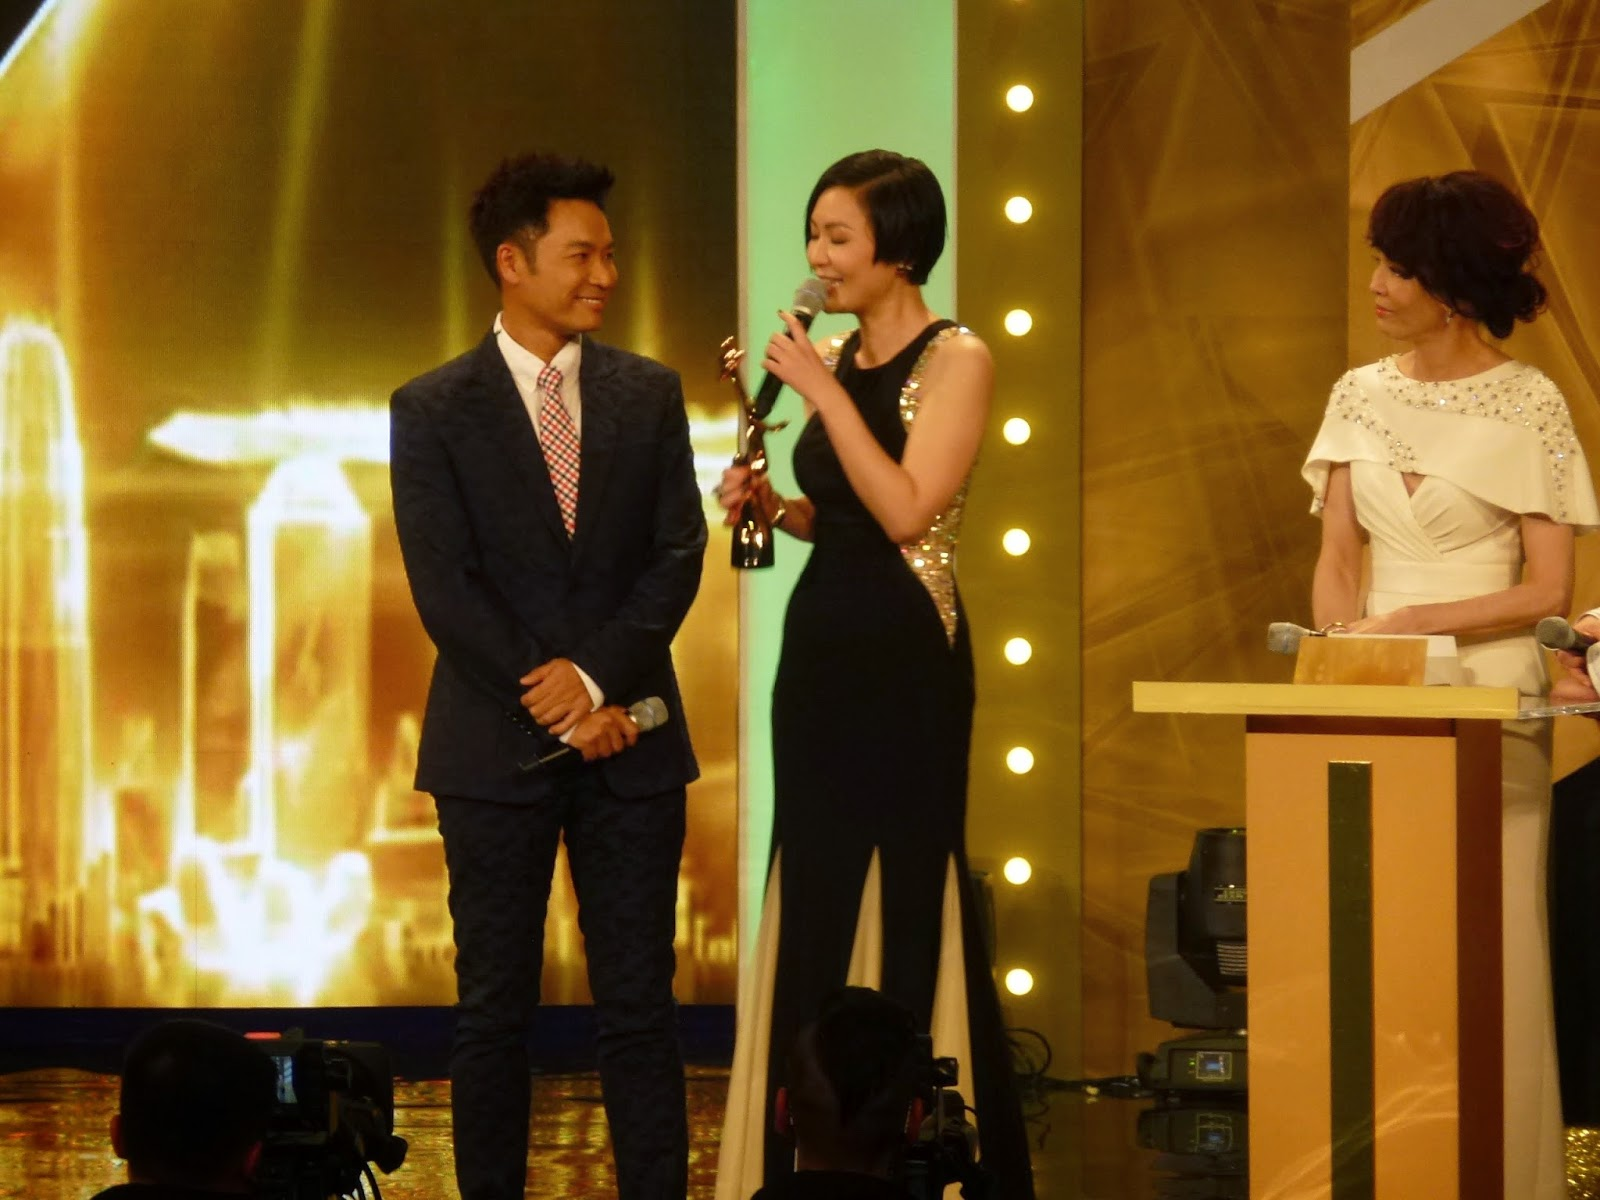 tvb stars dating If you want to date hong kong actress kate tsui, you better not be working in showbiz the sultry 33-year-old revealed at the starhub tvb.